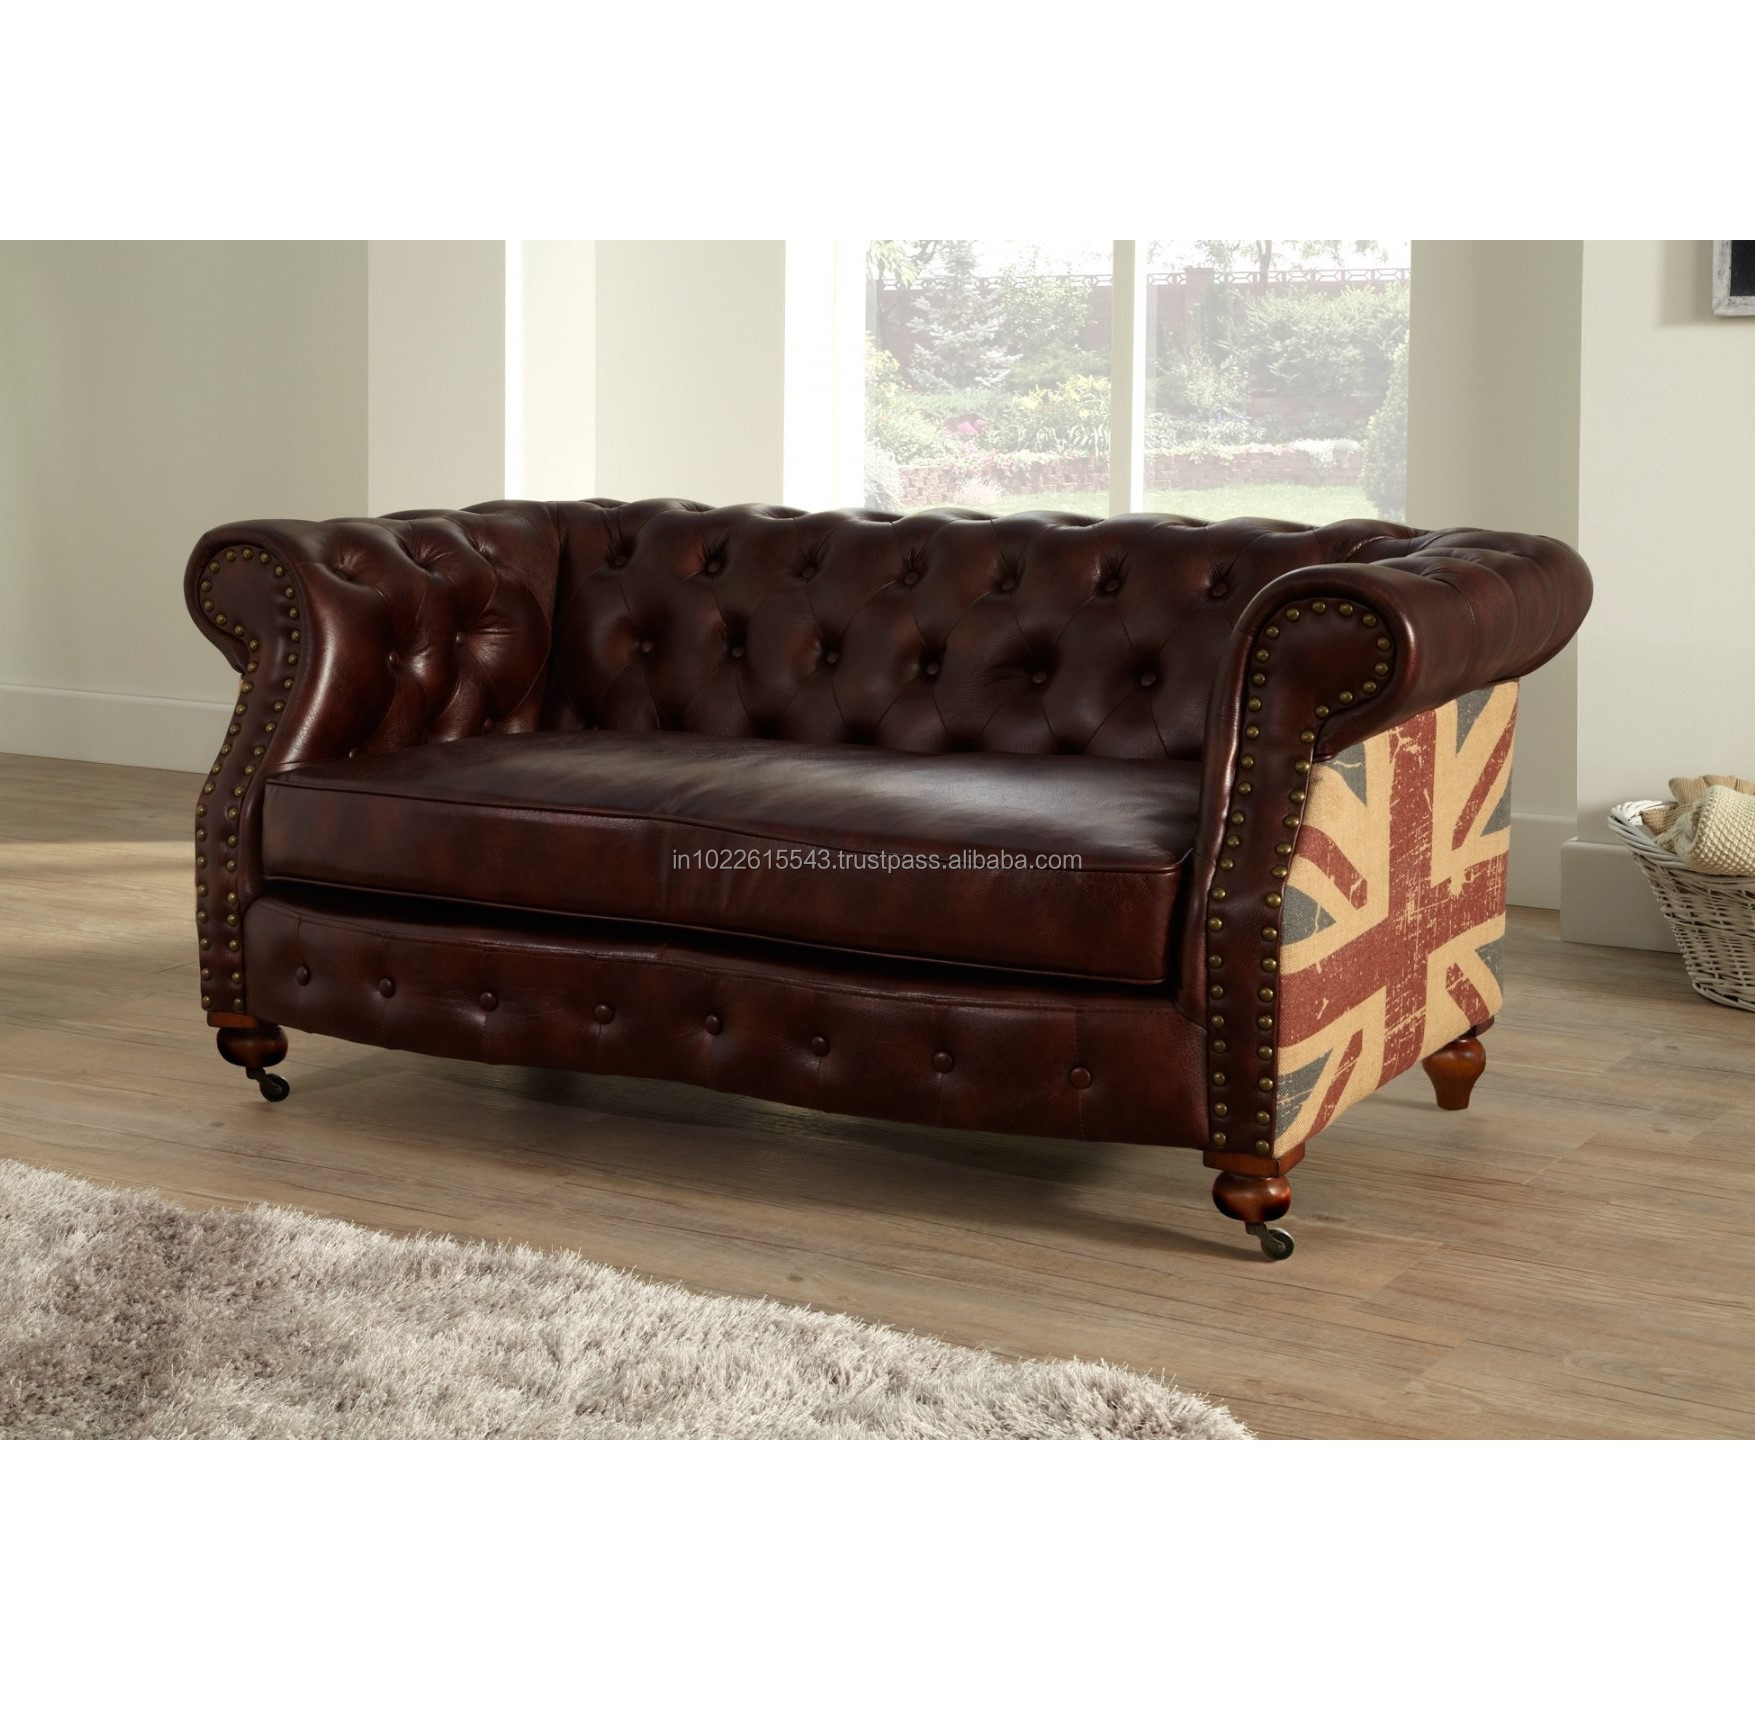 Picture of: Vintage Leather Chesterfield Two Seater Sofa Antique Union Jack Leather Two Seater Sofa Buy Sofa De Cuero Moderno Barato Sofa De Cuero Genuino Italia Sofa De Cuero Product On Alibaba Com